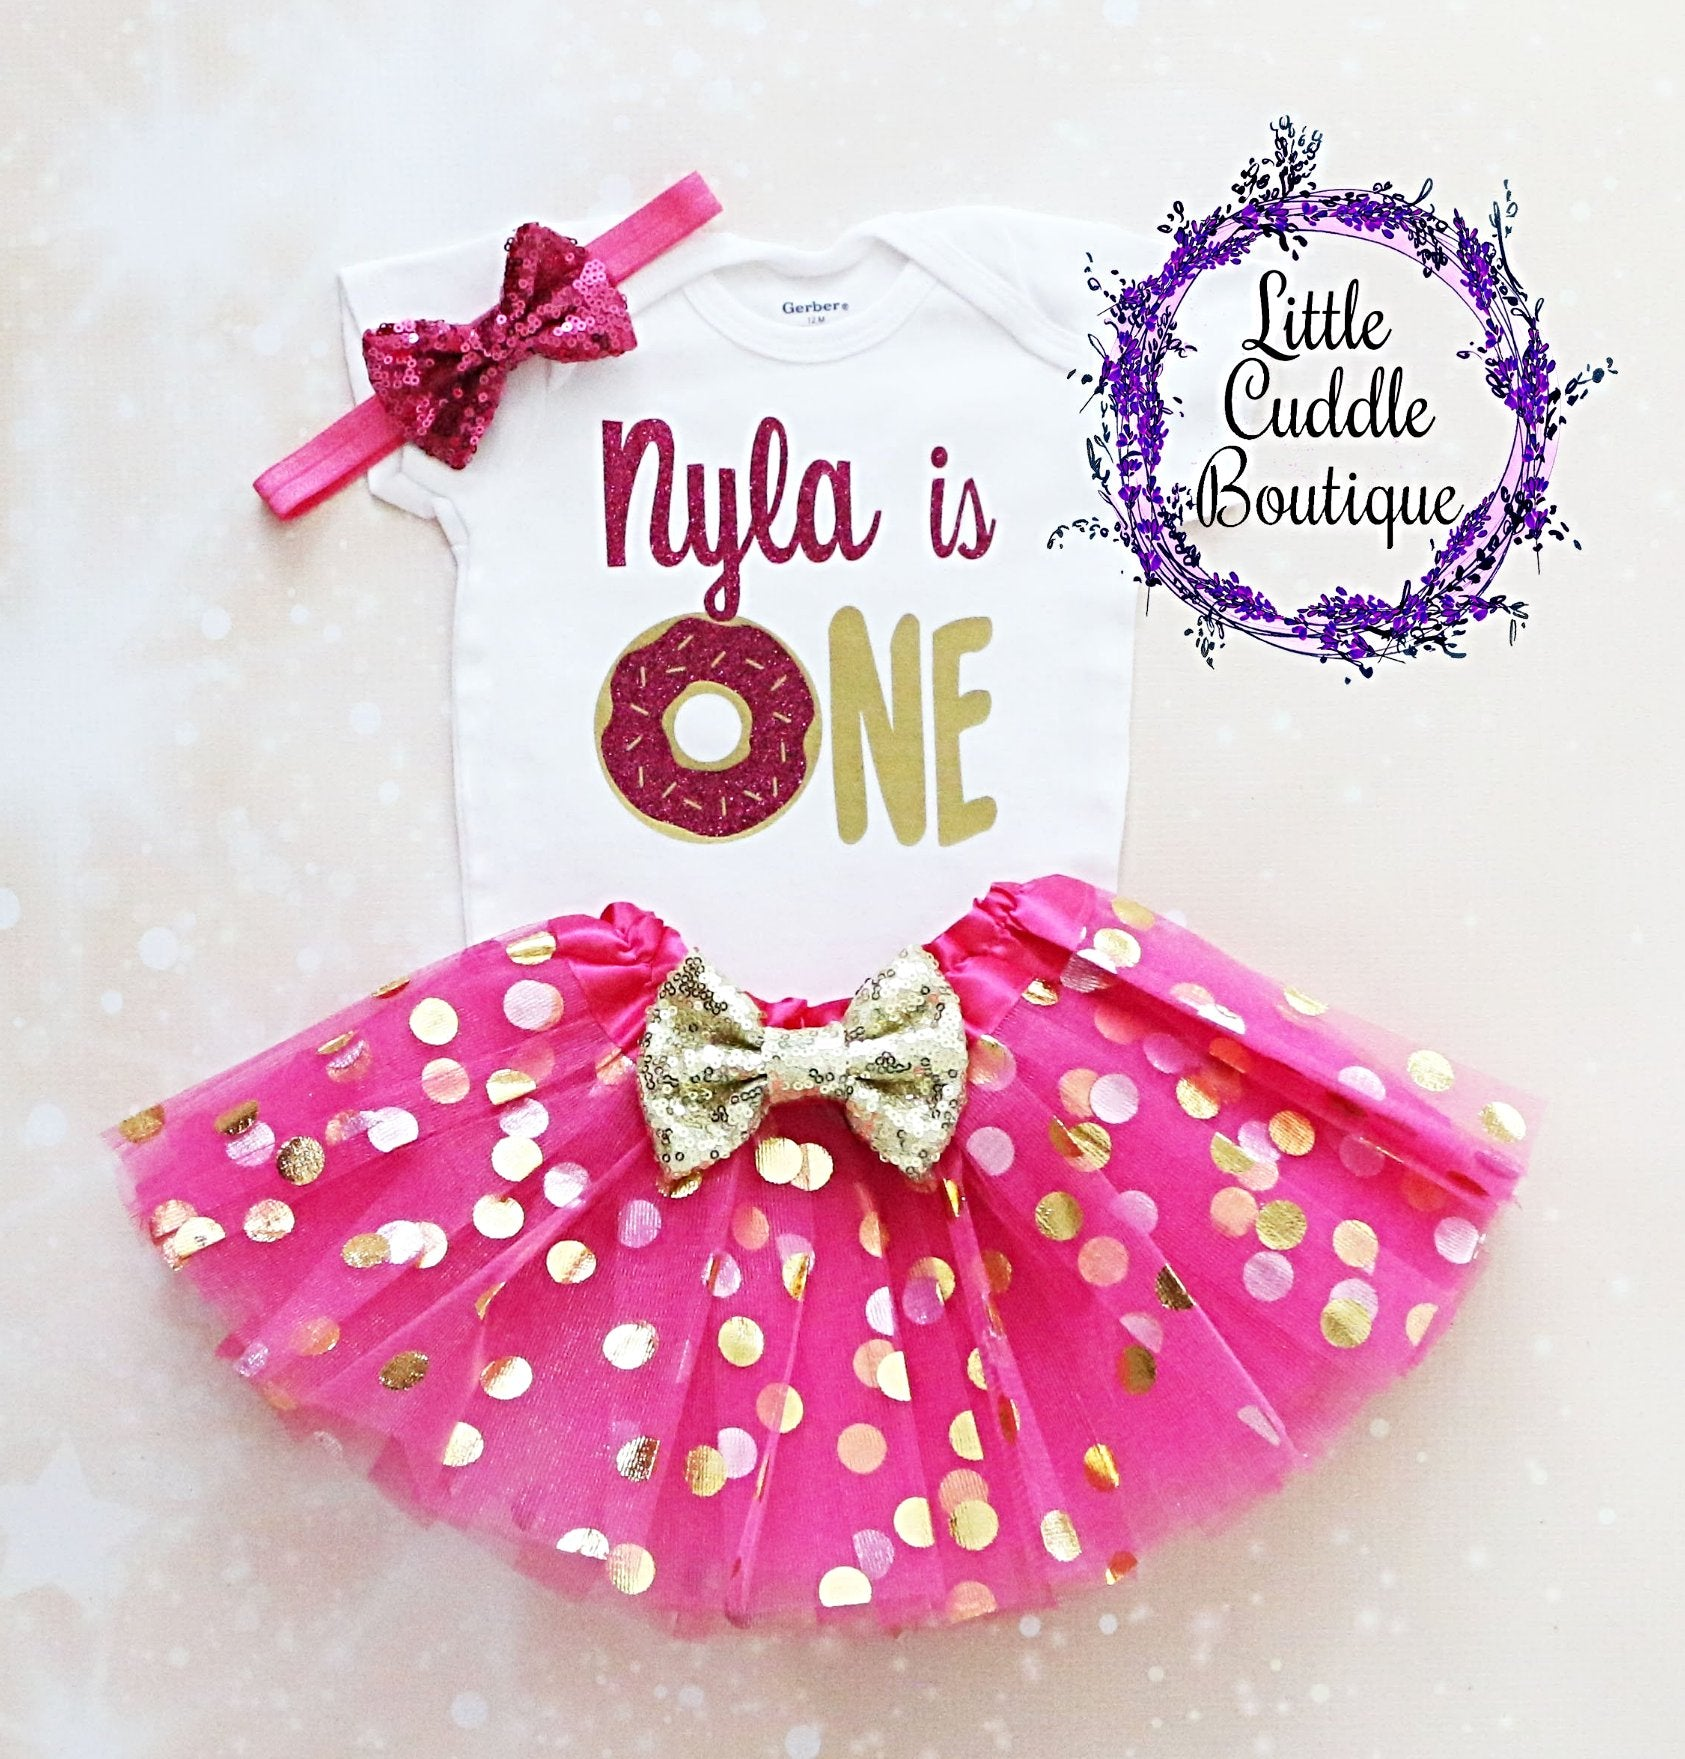 7bcce3104 Personalized Donut First Birthday Tutu Outfit-Little Cuddle Boutique